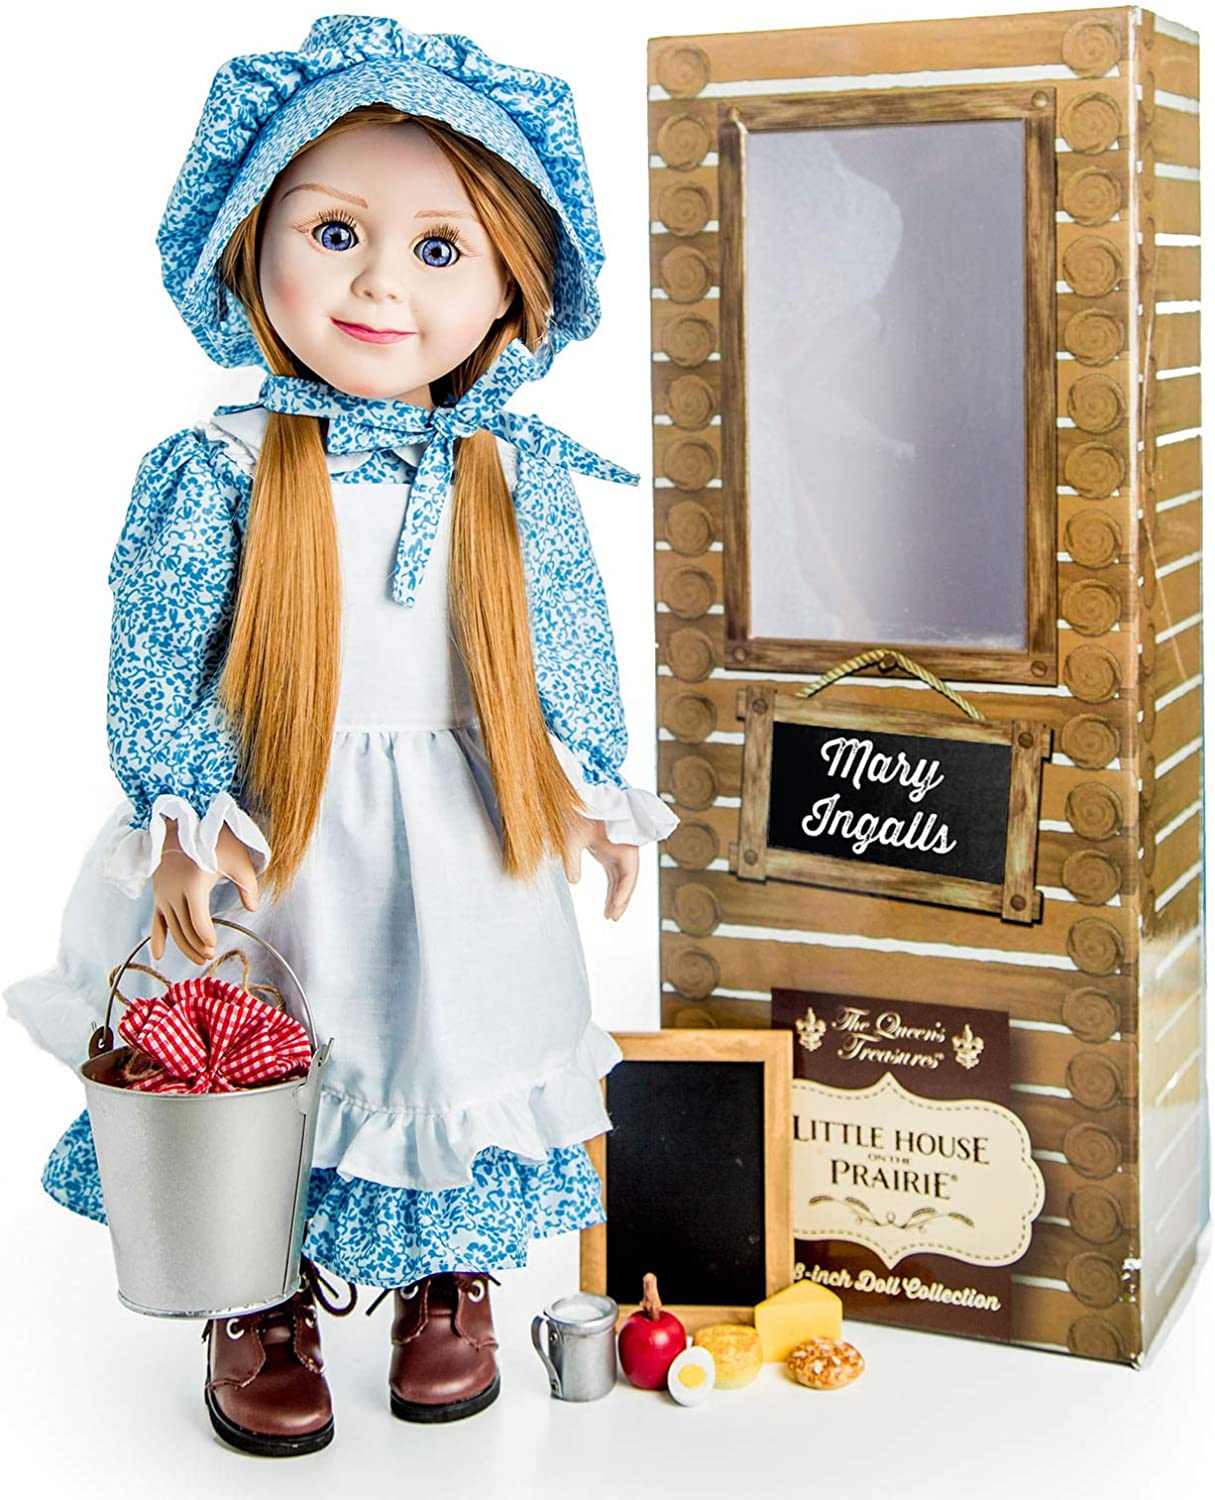 Amazon Com The Queen S Treasures Officially Licensed Little House On The Prairie Mary Ingalls 18 Inch Doll Comes With A Lunch Pail Food And Chalk Board Compatible With American Girl Toys Games